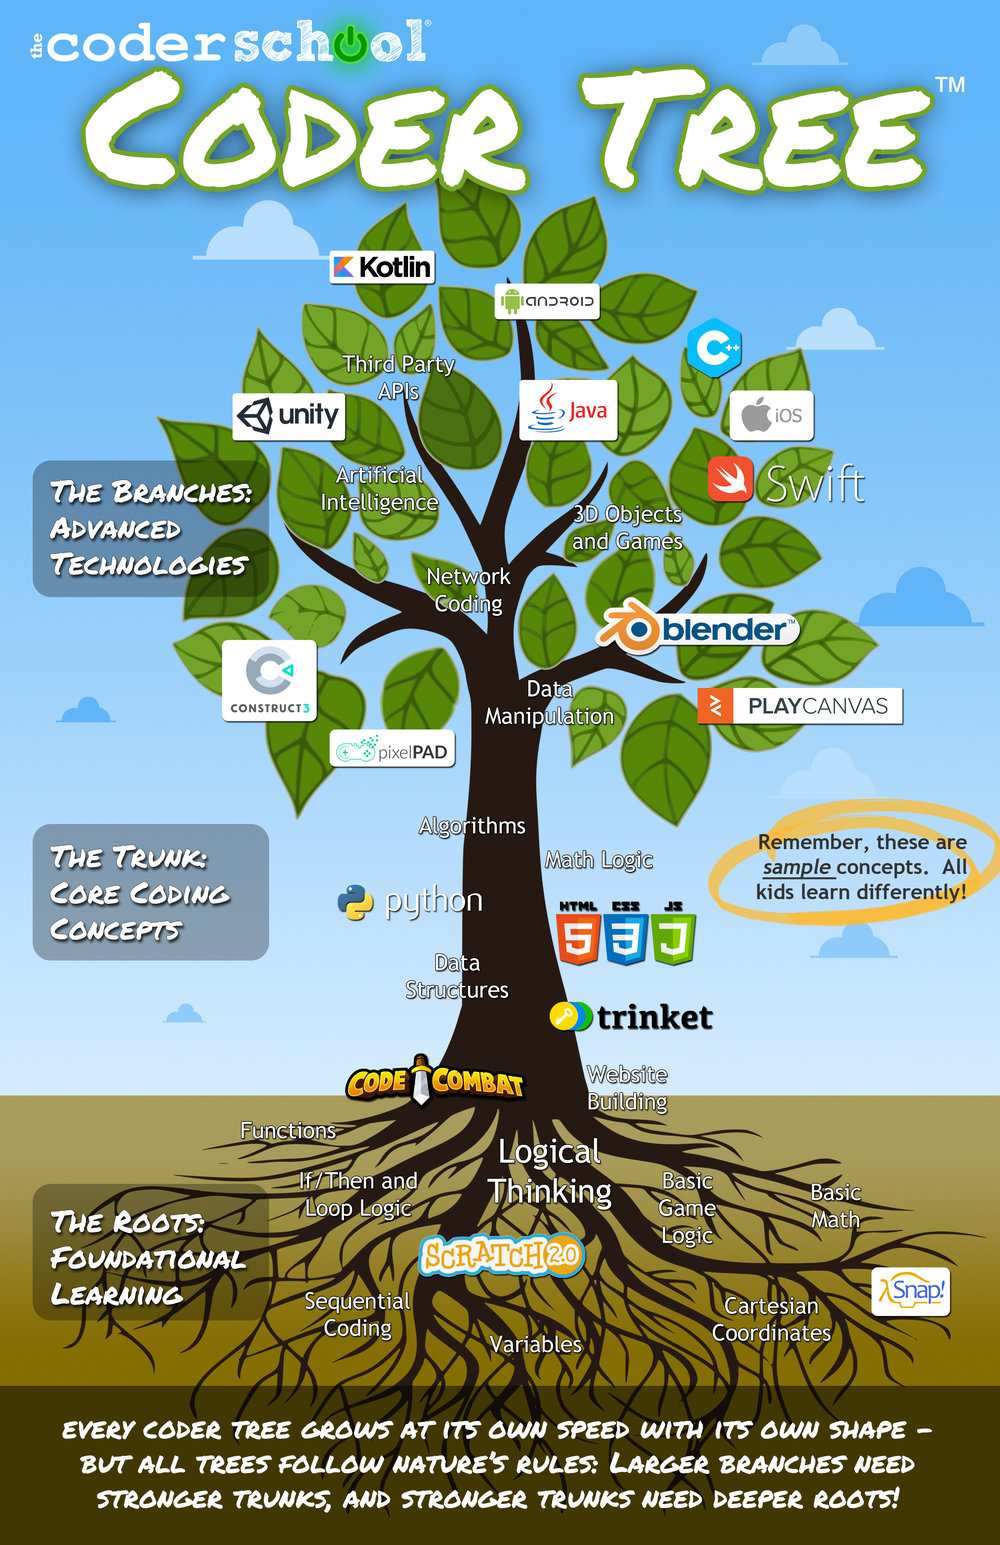 theCoderSchool's Coder Tree®